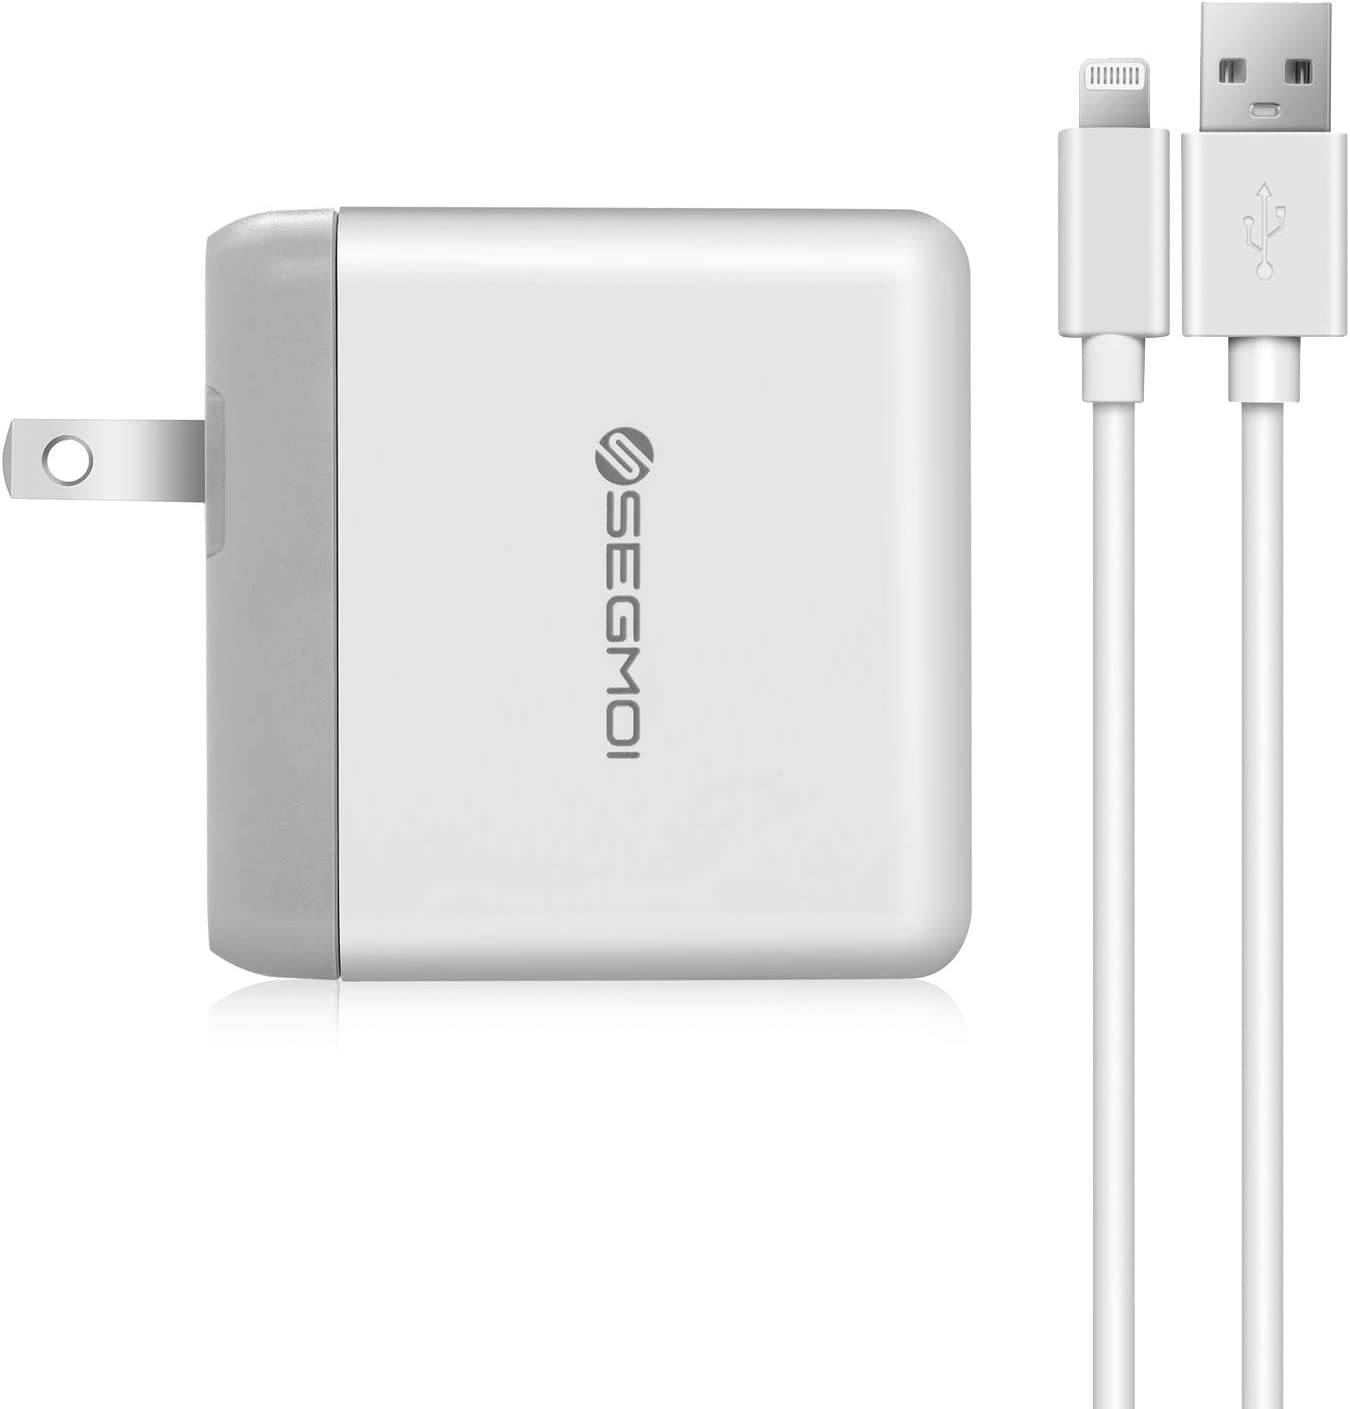 iPhone Charger with Wall Plug Apple Certified,10 Foot Lightning to USB Cable with 12W USB Power Adapter for iPhone 12 11 Pro Max X XS XR 8 Plus 7 6 5 SE iPad Air Mini